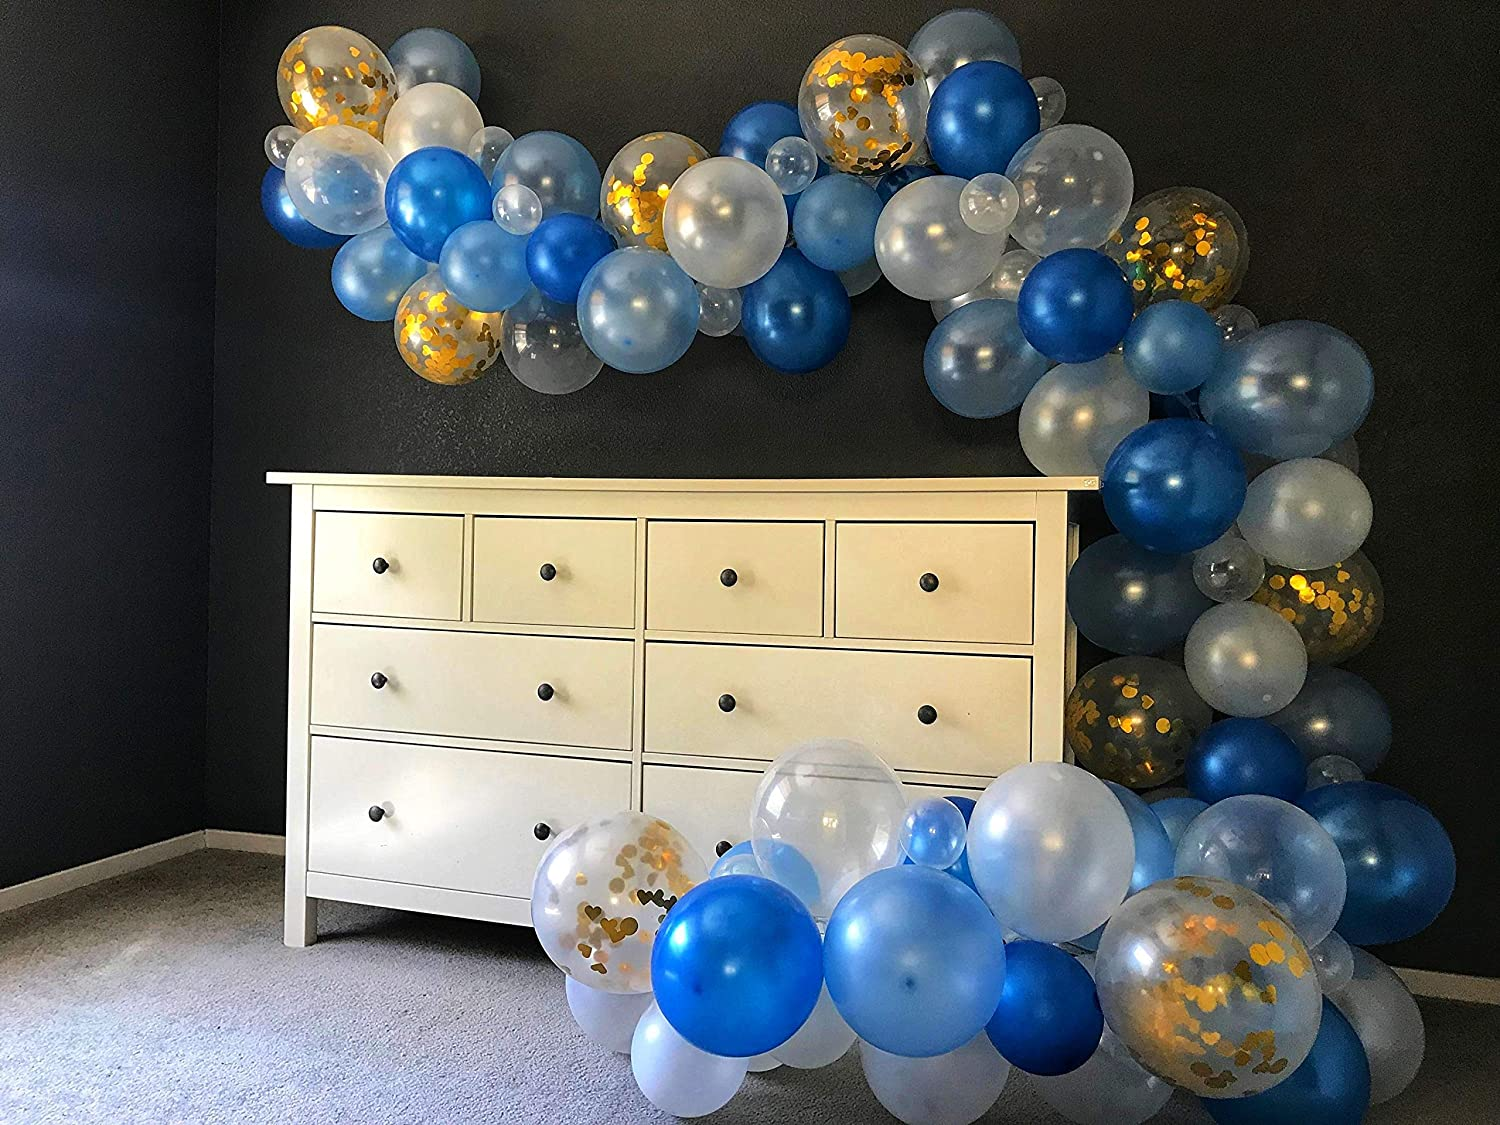 5' - 40' Create Your Own Balloon Garland DIY Kit, CHOOSE Your Own Colors,  Includes Pump & Wall Hooks